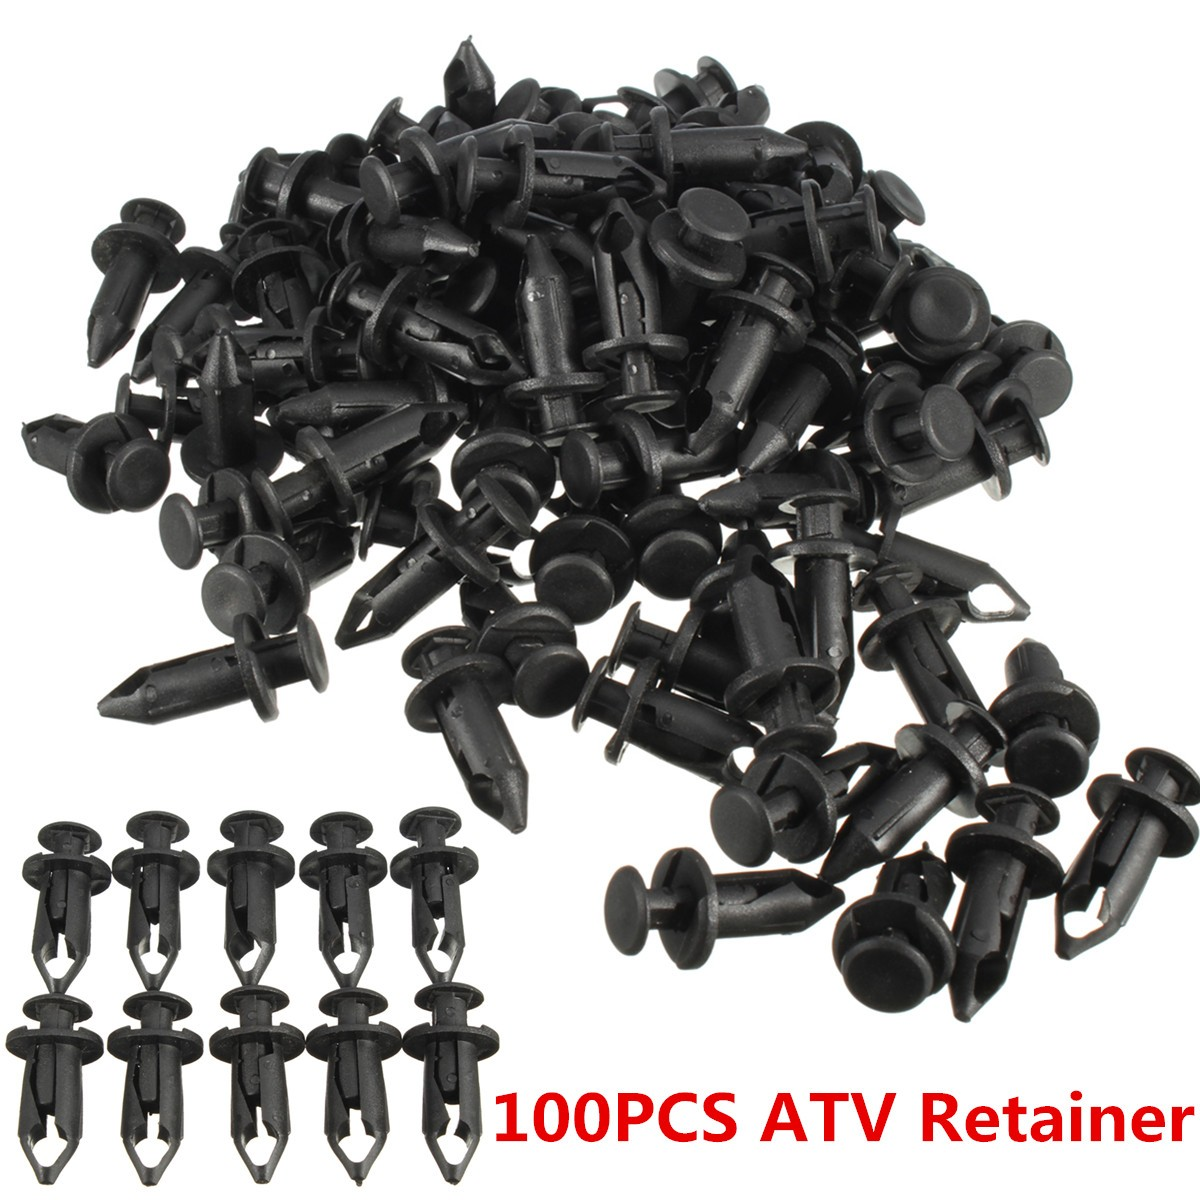 Set Of 100 ATV Retainer Clips 8mm Push Pin Splash Guard Body Panel Fit For Honda ATV, Side-by-Side & UTV Fenders Auto Parts & Accessories